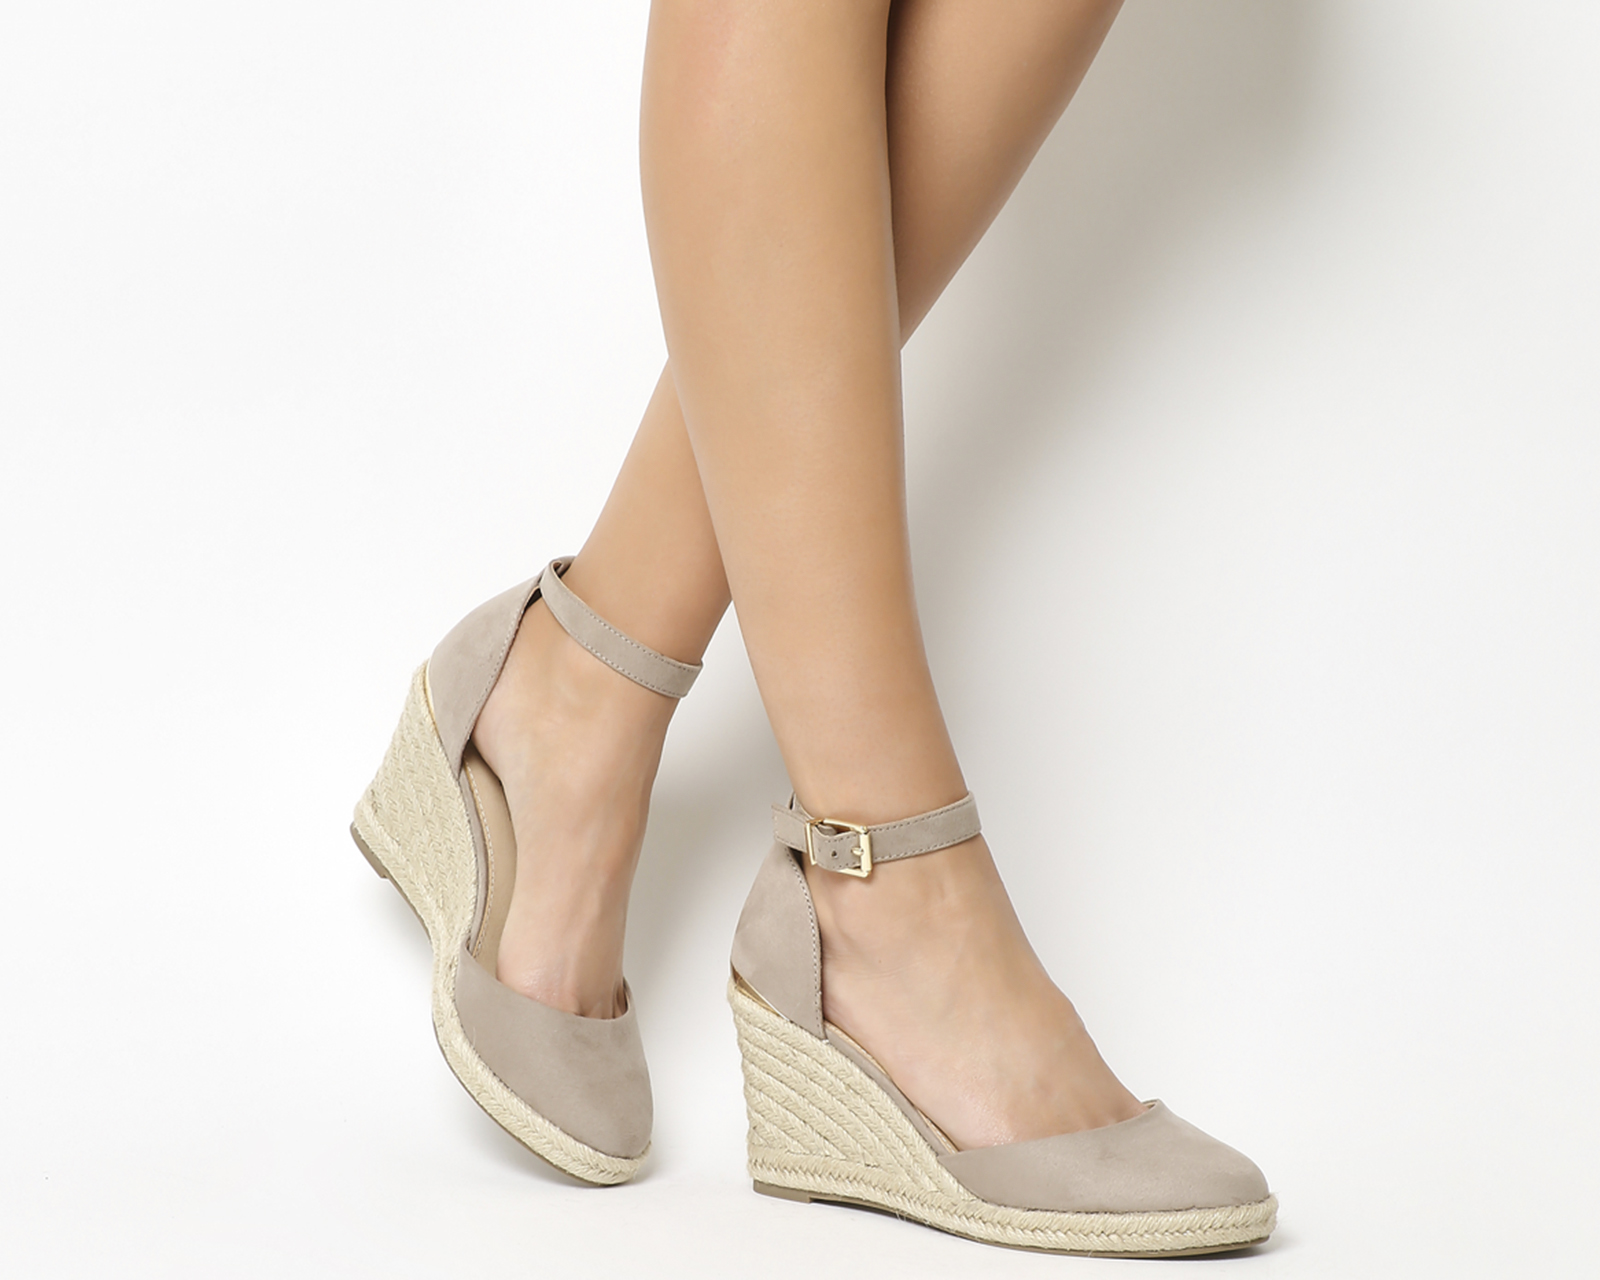 cb9919dff69 Details about Womens Office Marsha Closed Toe Espadrille Wedges Taupe With  Gold Heel Clip Heel